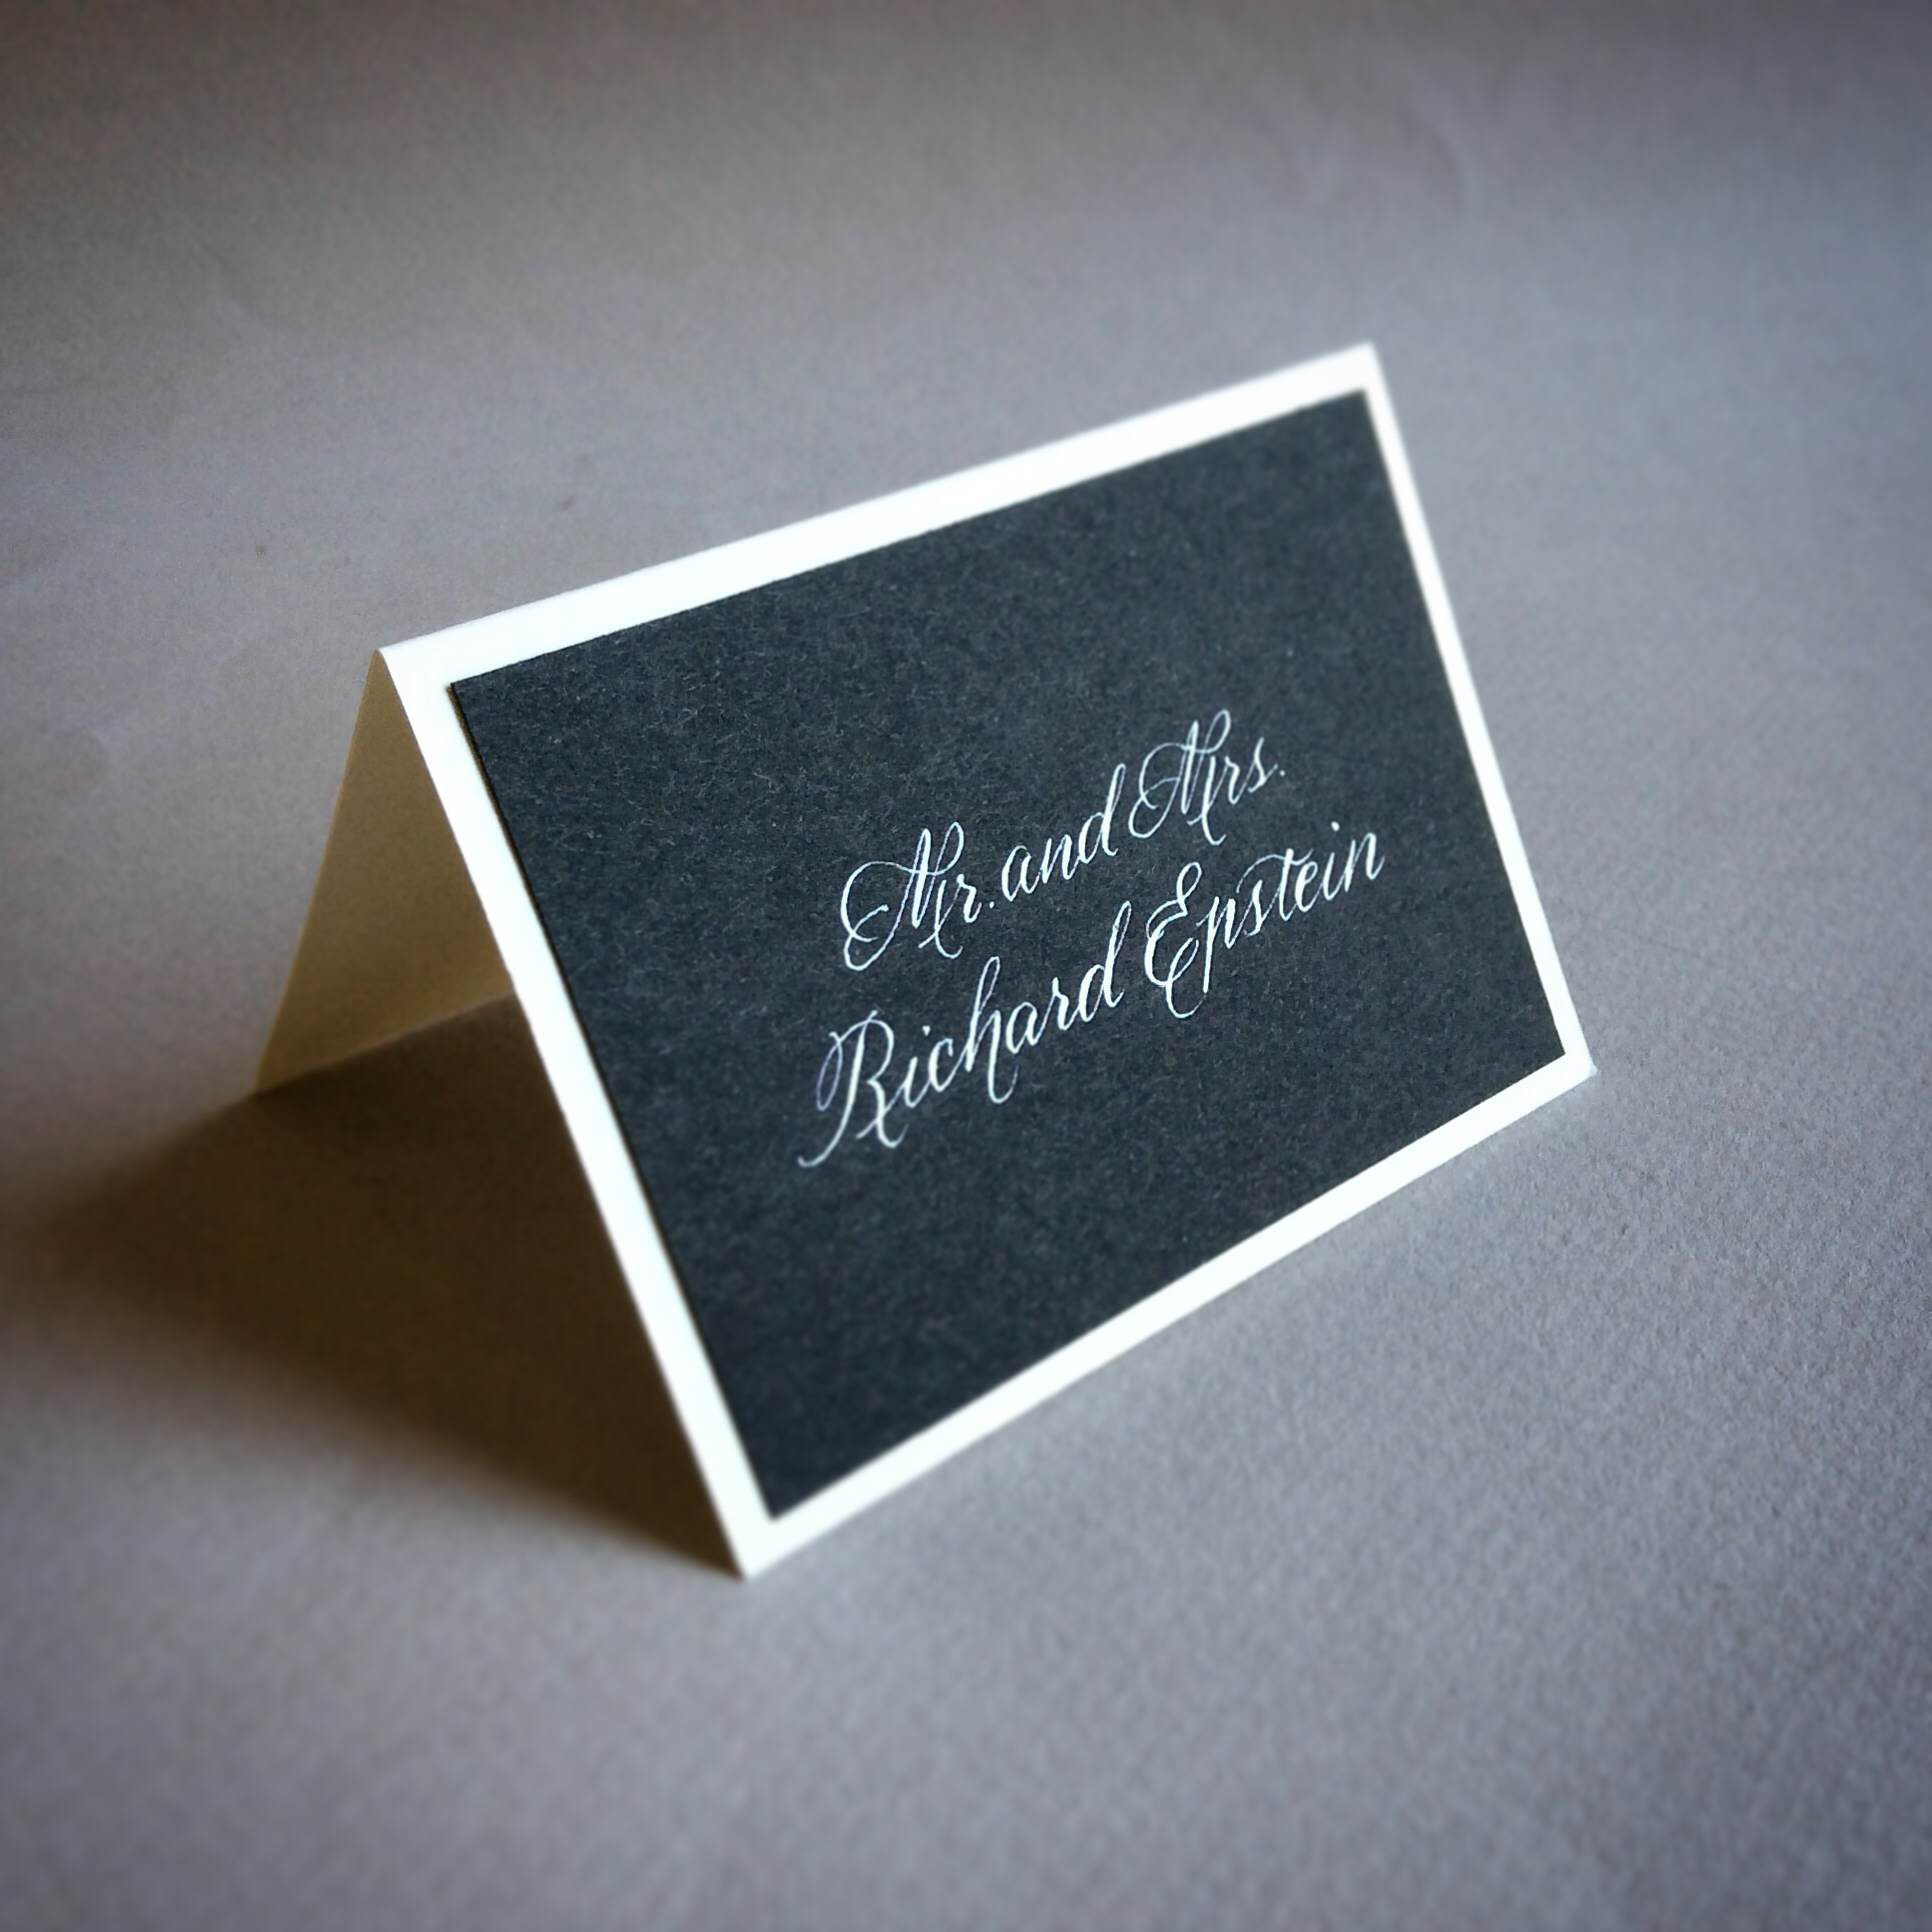 Custom escort card with opaque white calligraphy.